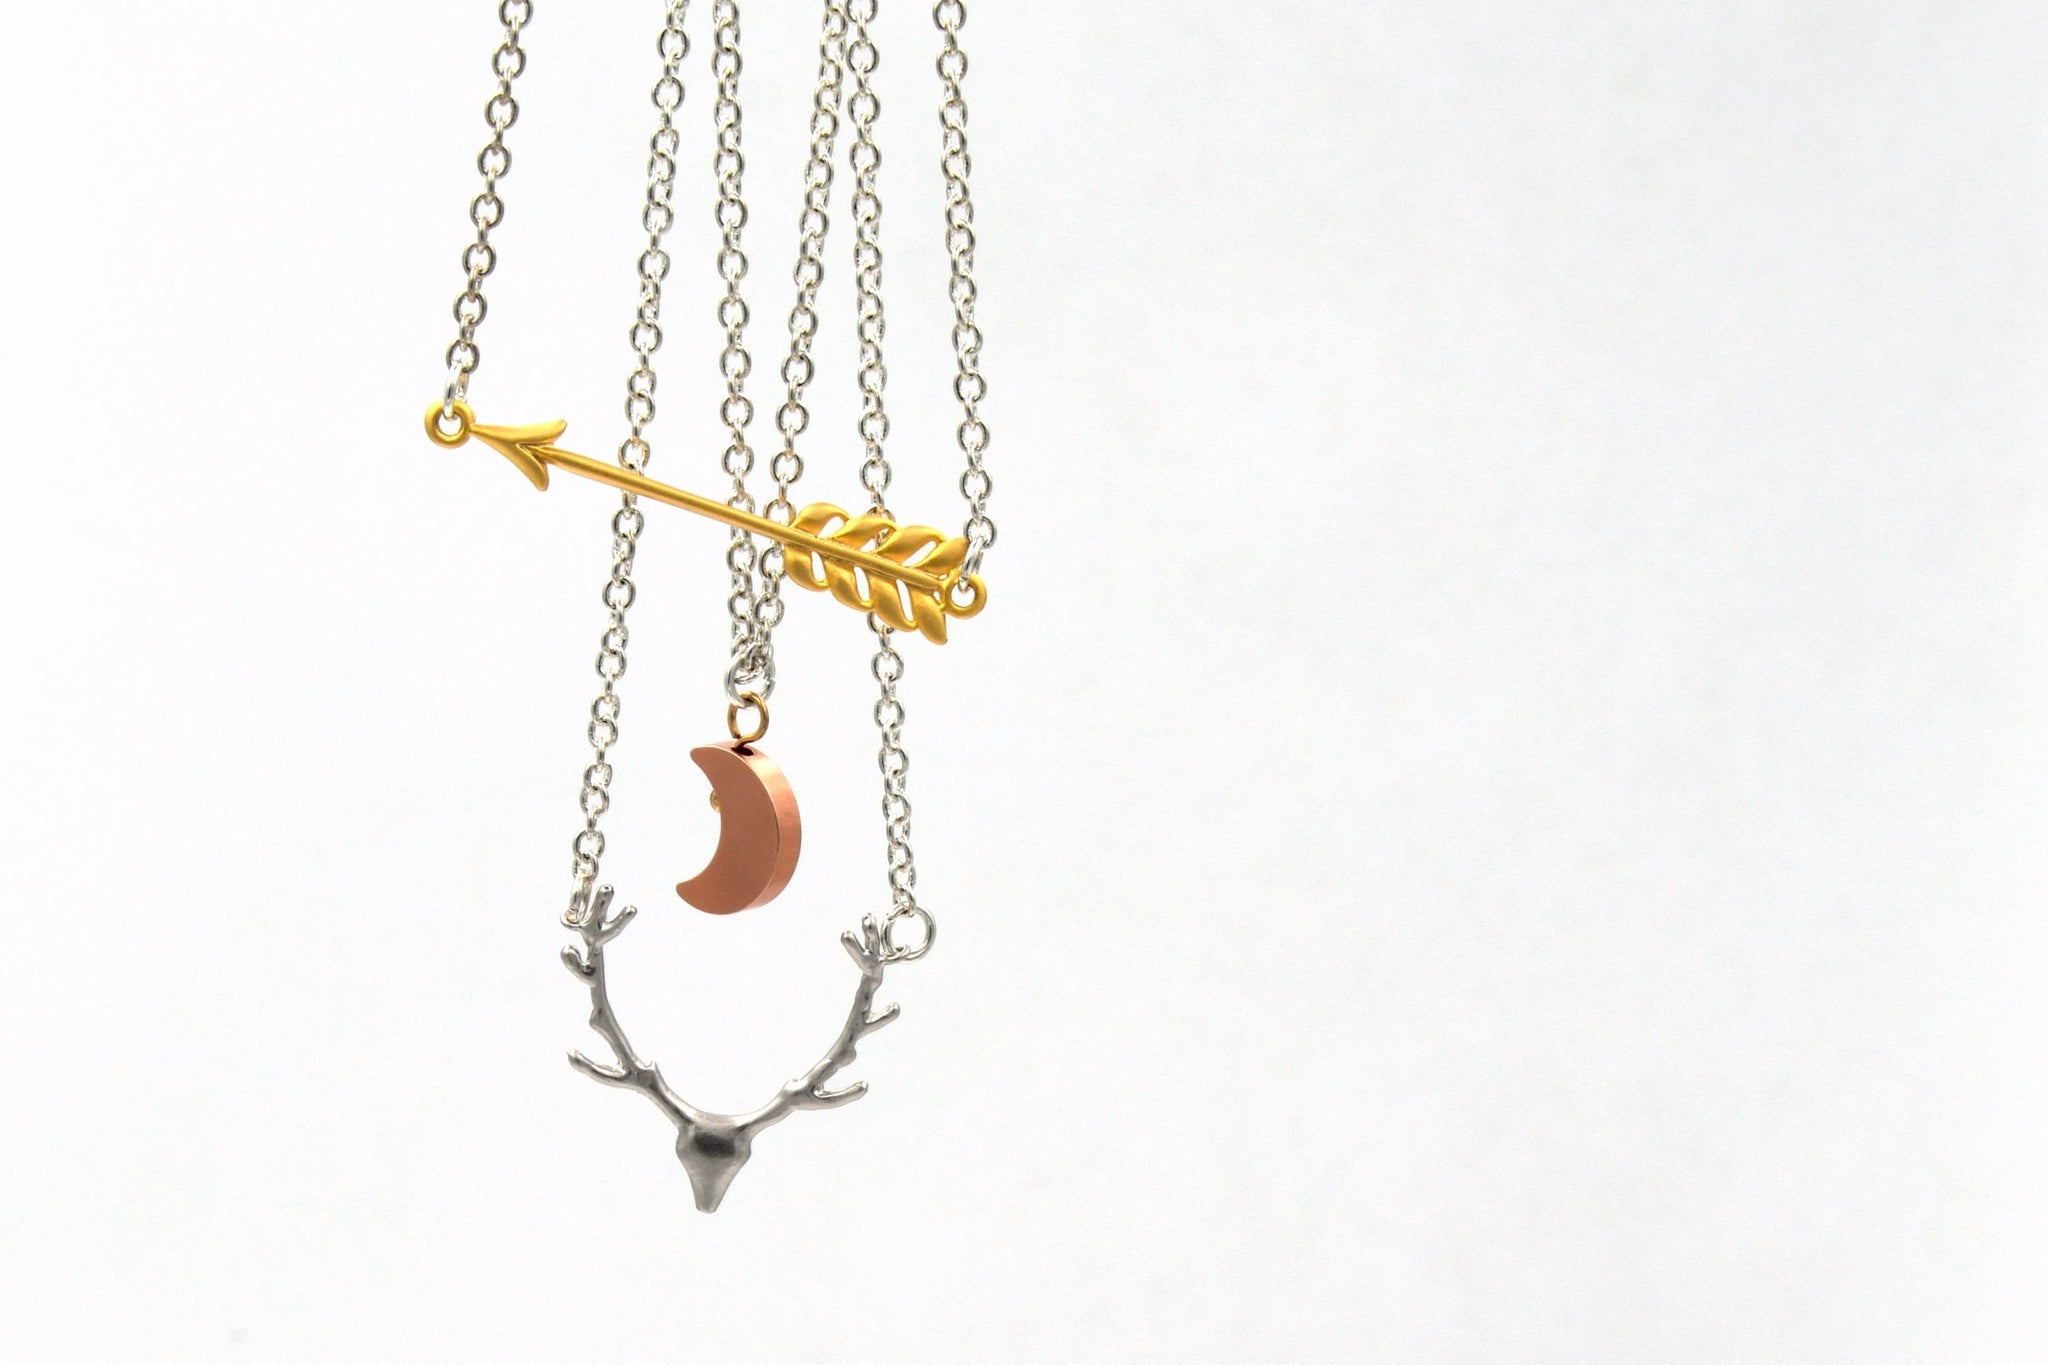 Artemis Layered Necklace with Arrow, Moon and Deer Skull Charms (Silver, Rose Gold and Gold Mixed Metals, Greek Mythology Jewelry) fripparie